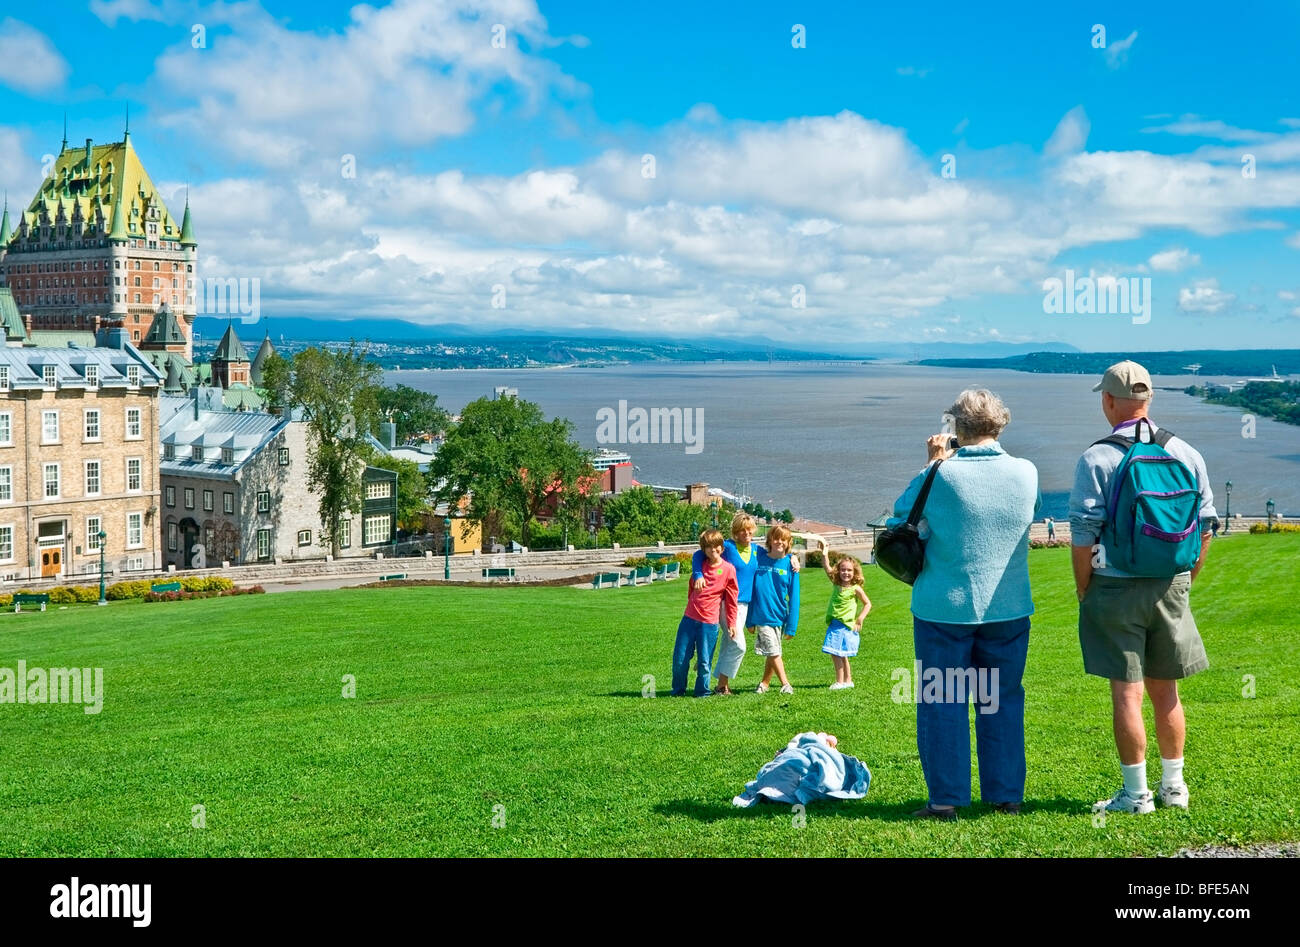 Souvenir photo of family in front of Chateau Frontenac and the St. Lawrence River, Quebec City, Quebec, Canada - Stock Image